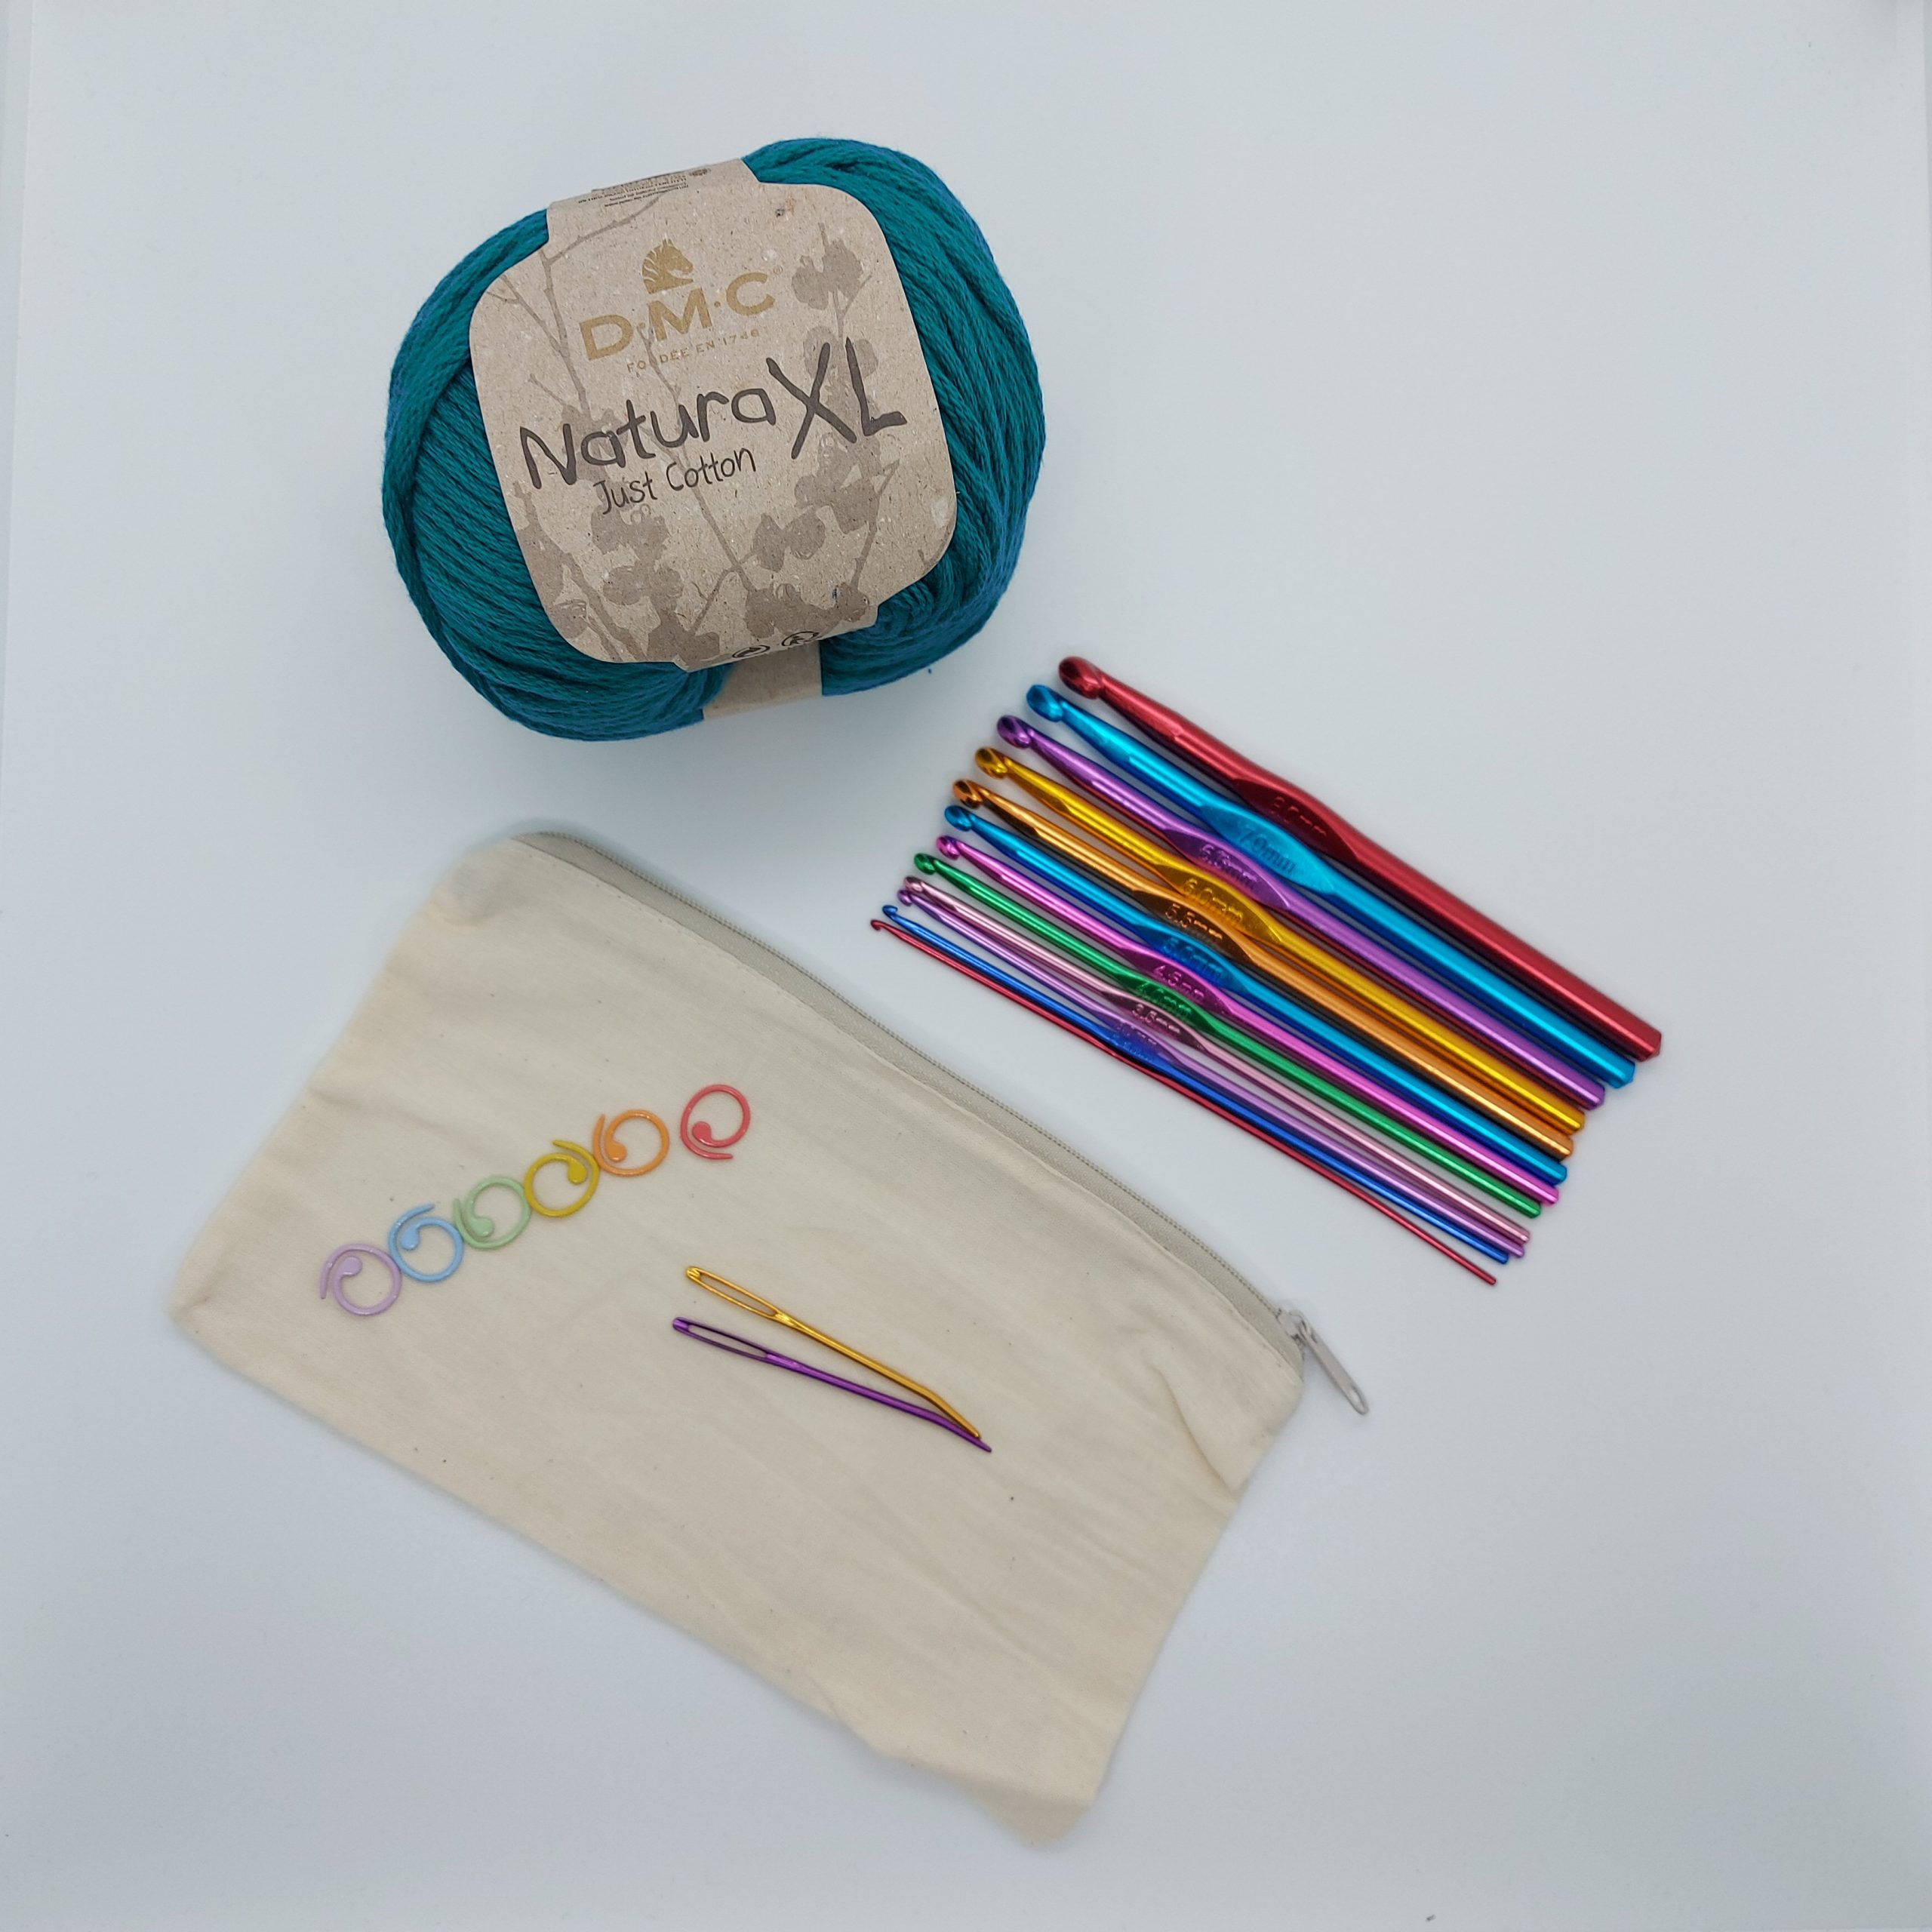 Crochet kit made of a set of hooks, a ball of yarn, bendy needles and stitch markers, with a zipped fabric pouch